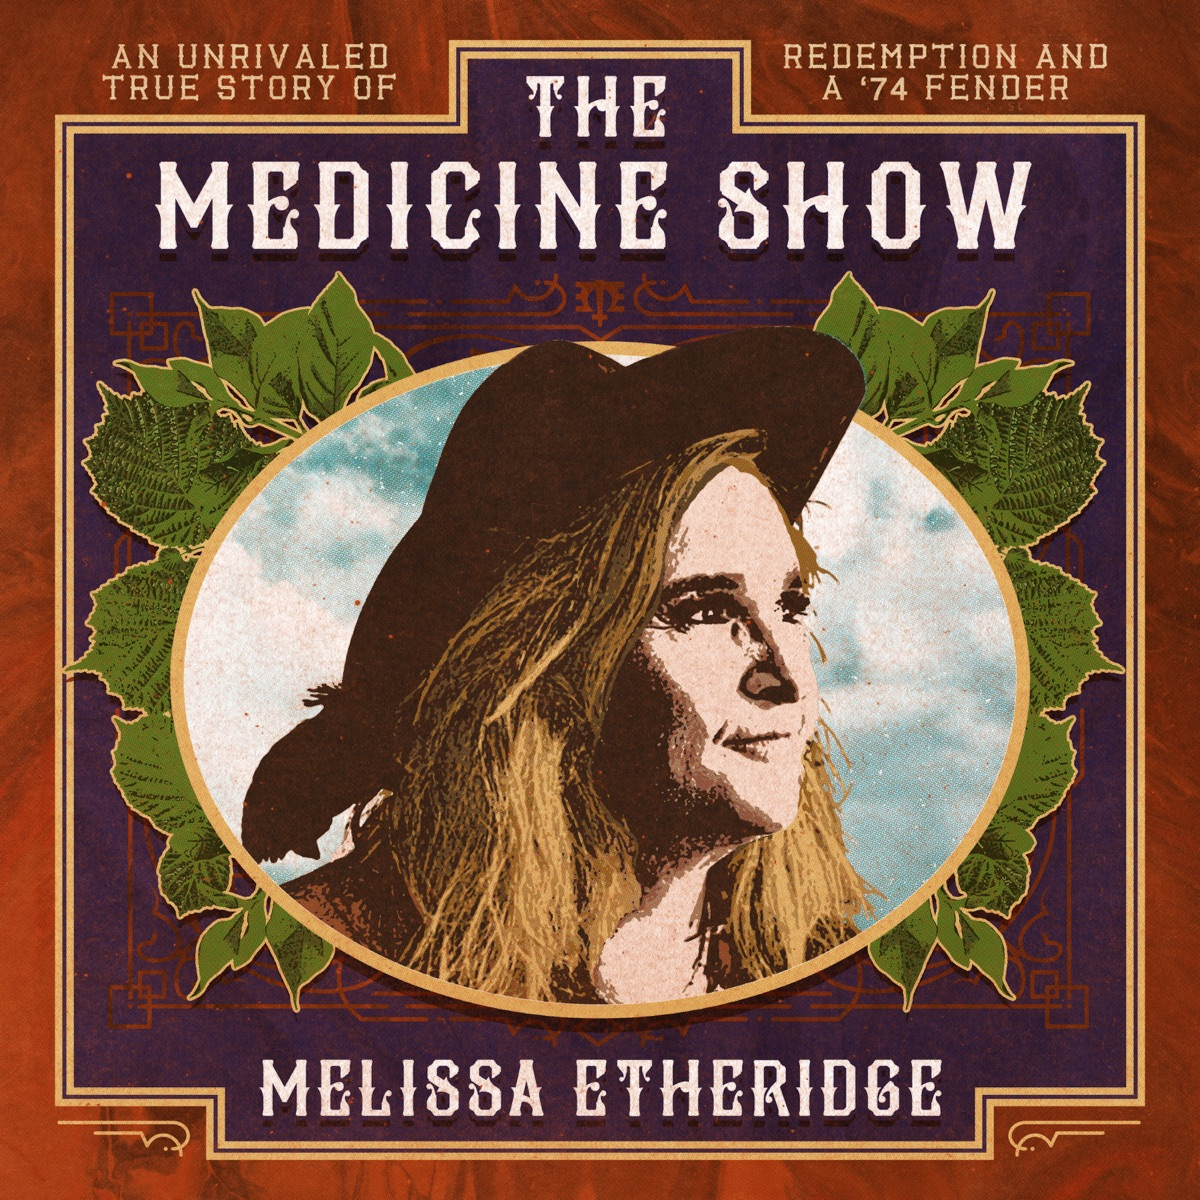 The Medicine Show Melissa Etheridge CD cover